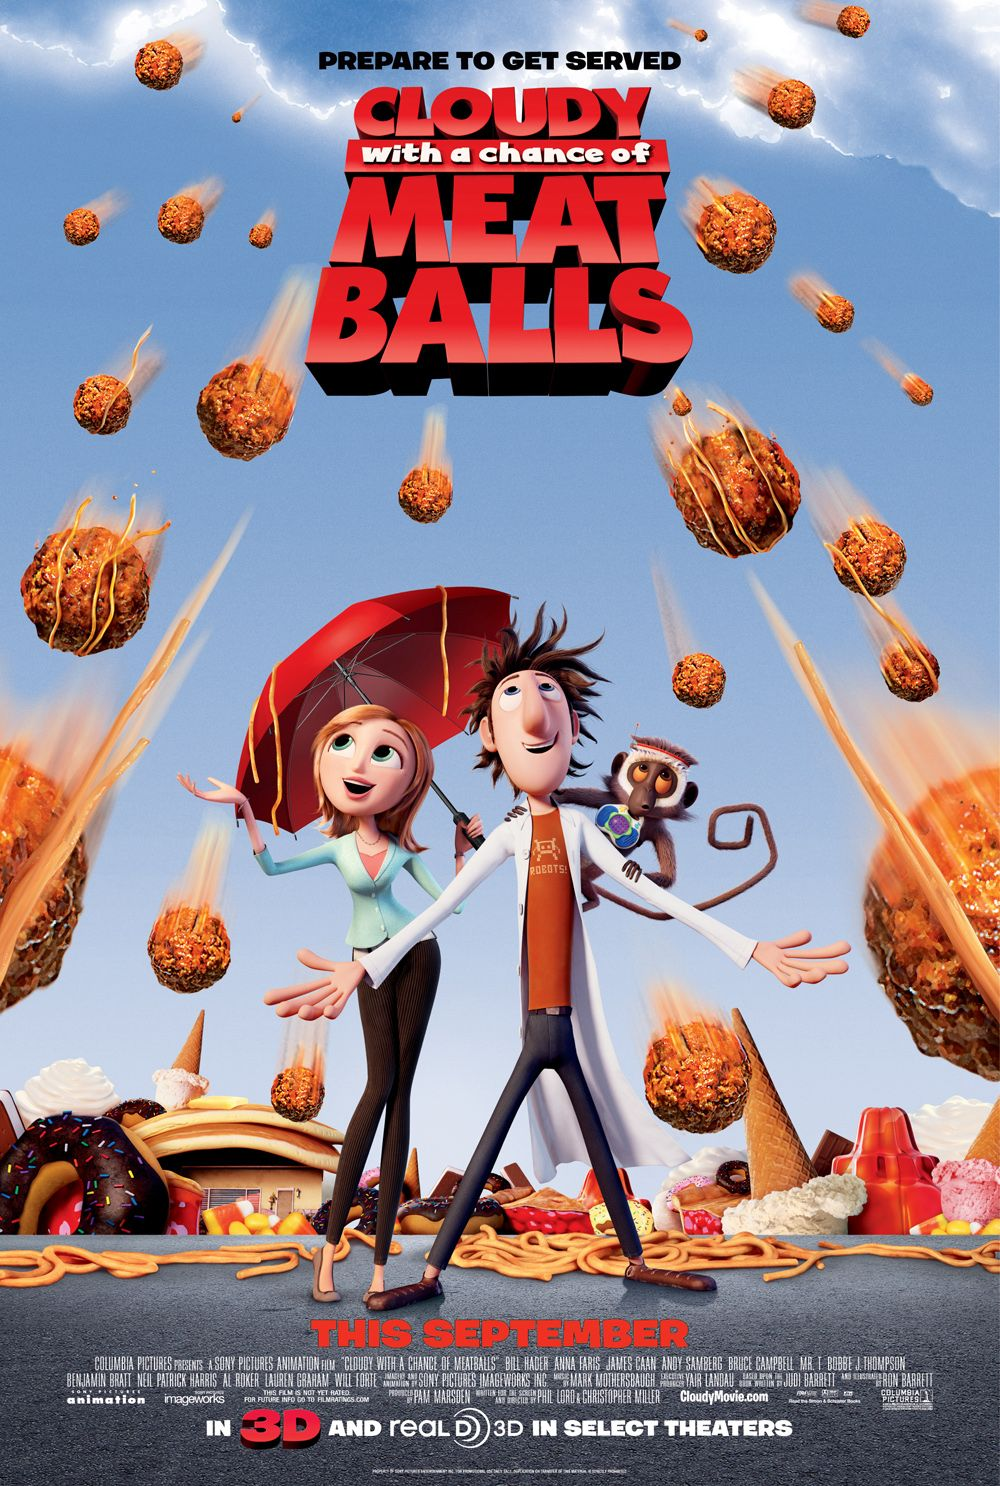 cloudy-with-a-chance-of-meatballs-movie-poster1